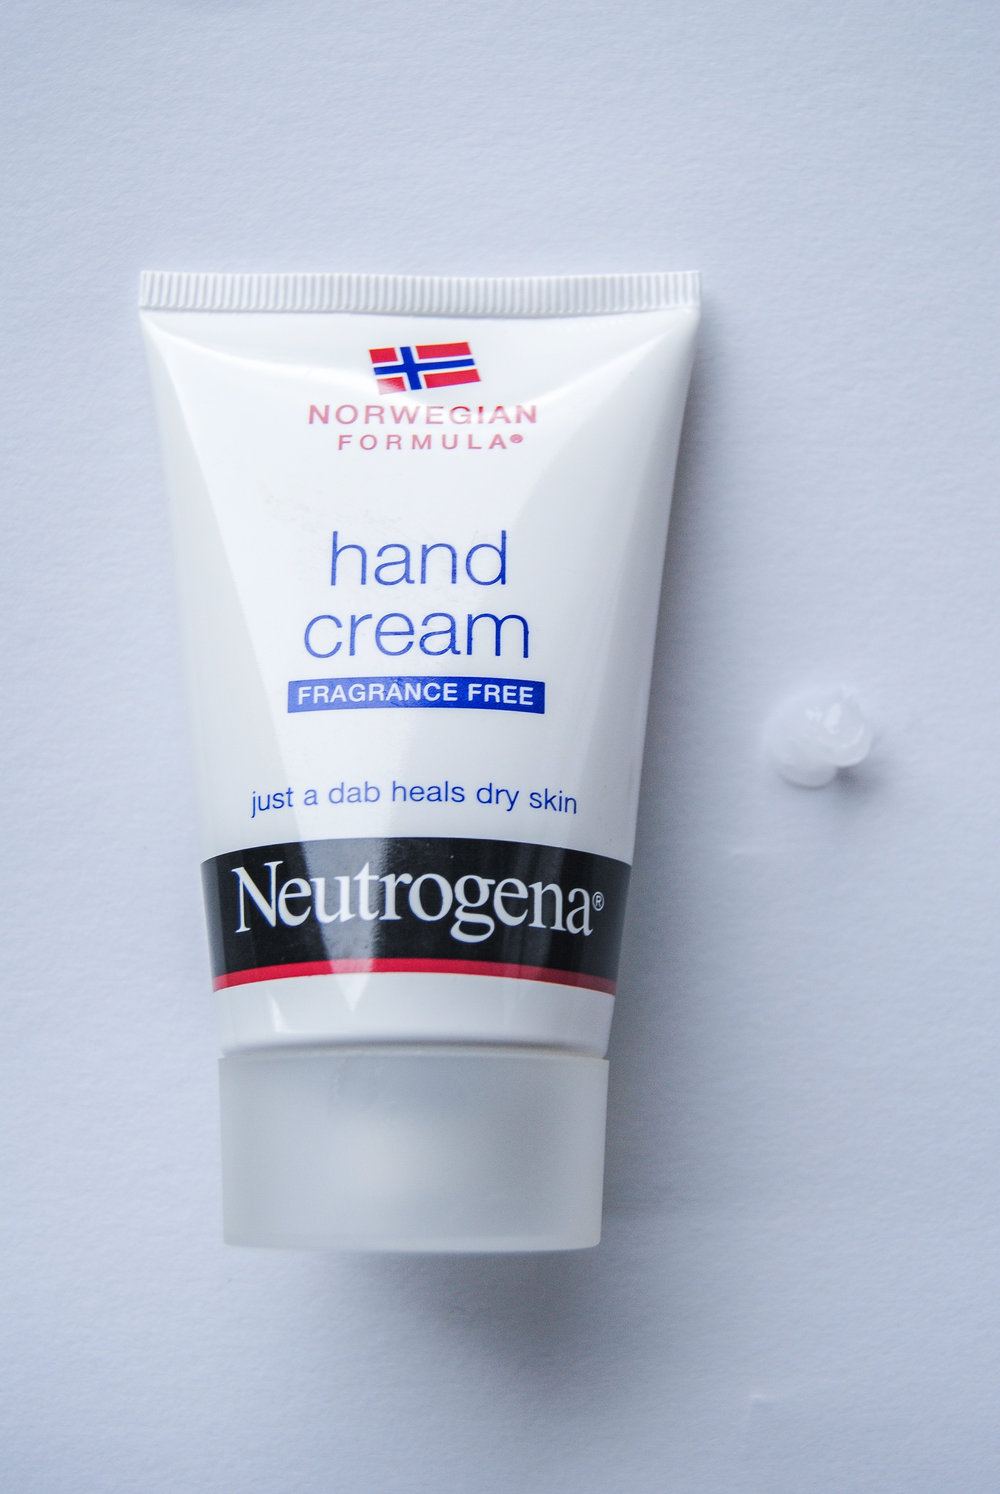 Neutrogena.com: $5.19 Target: $5.29Walmart: $3.96 ( or $7.68 for a 2-pack) -